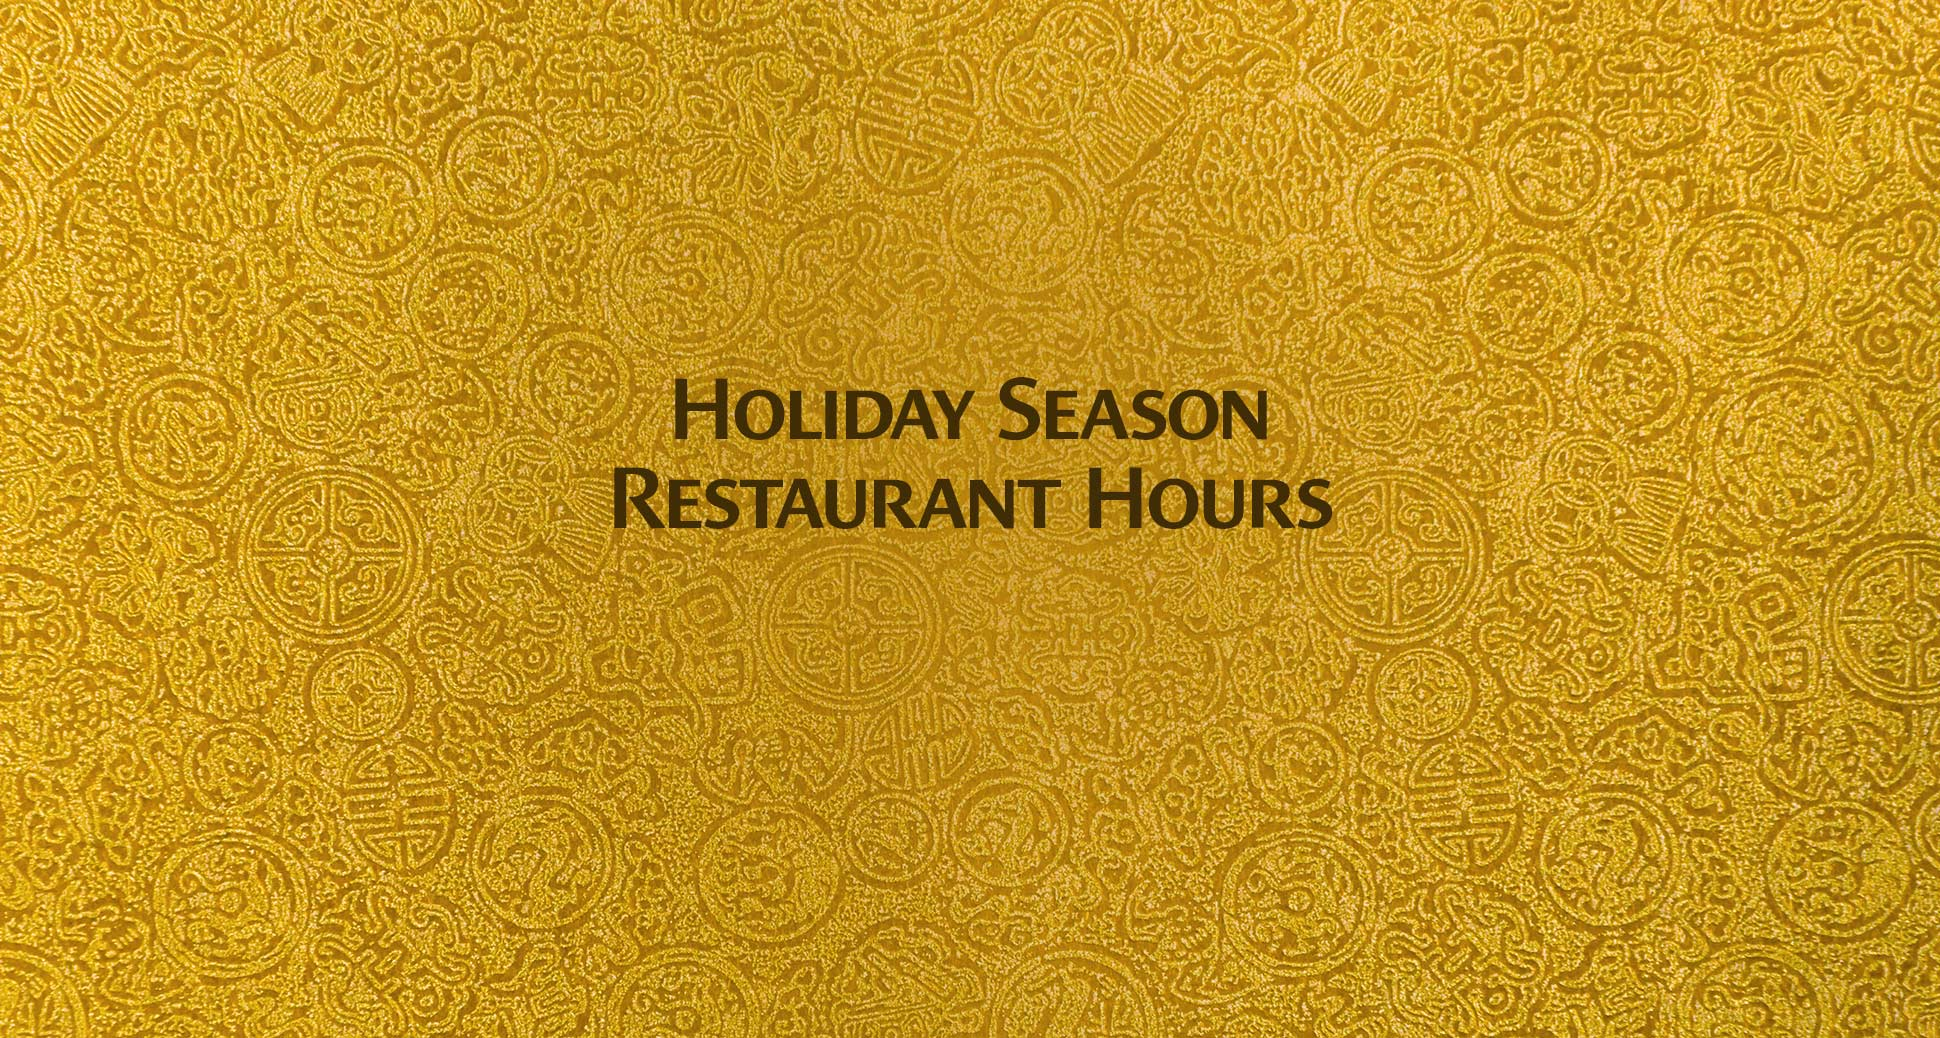 Holiday season restaurant hours